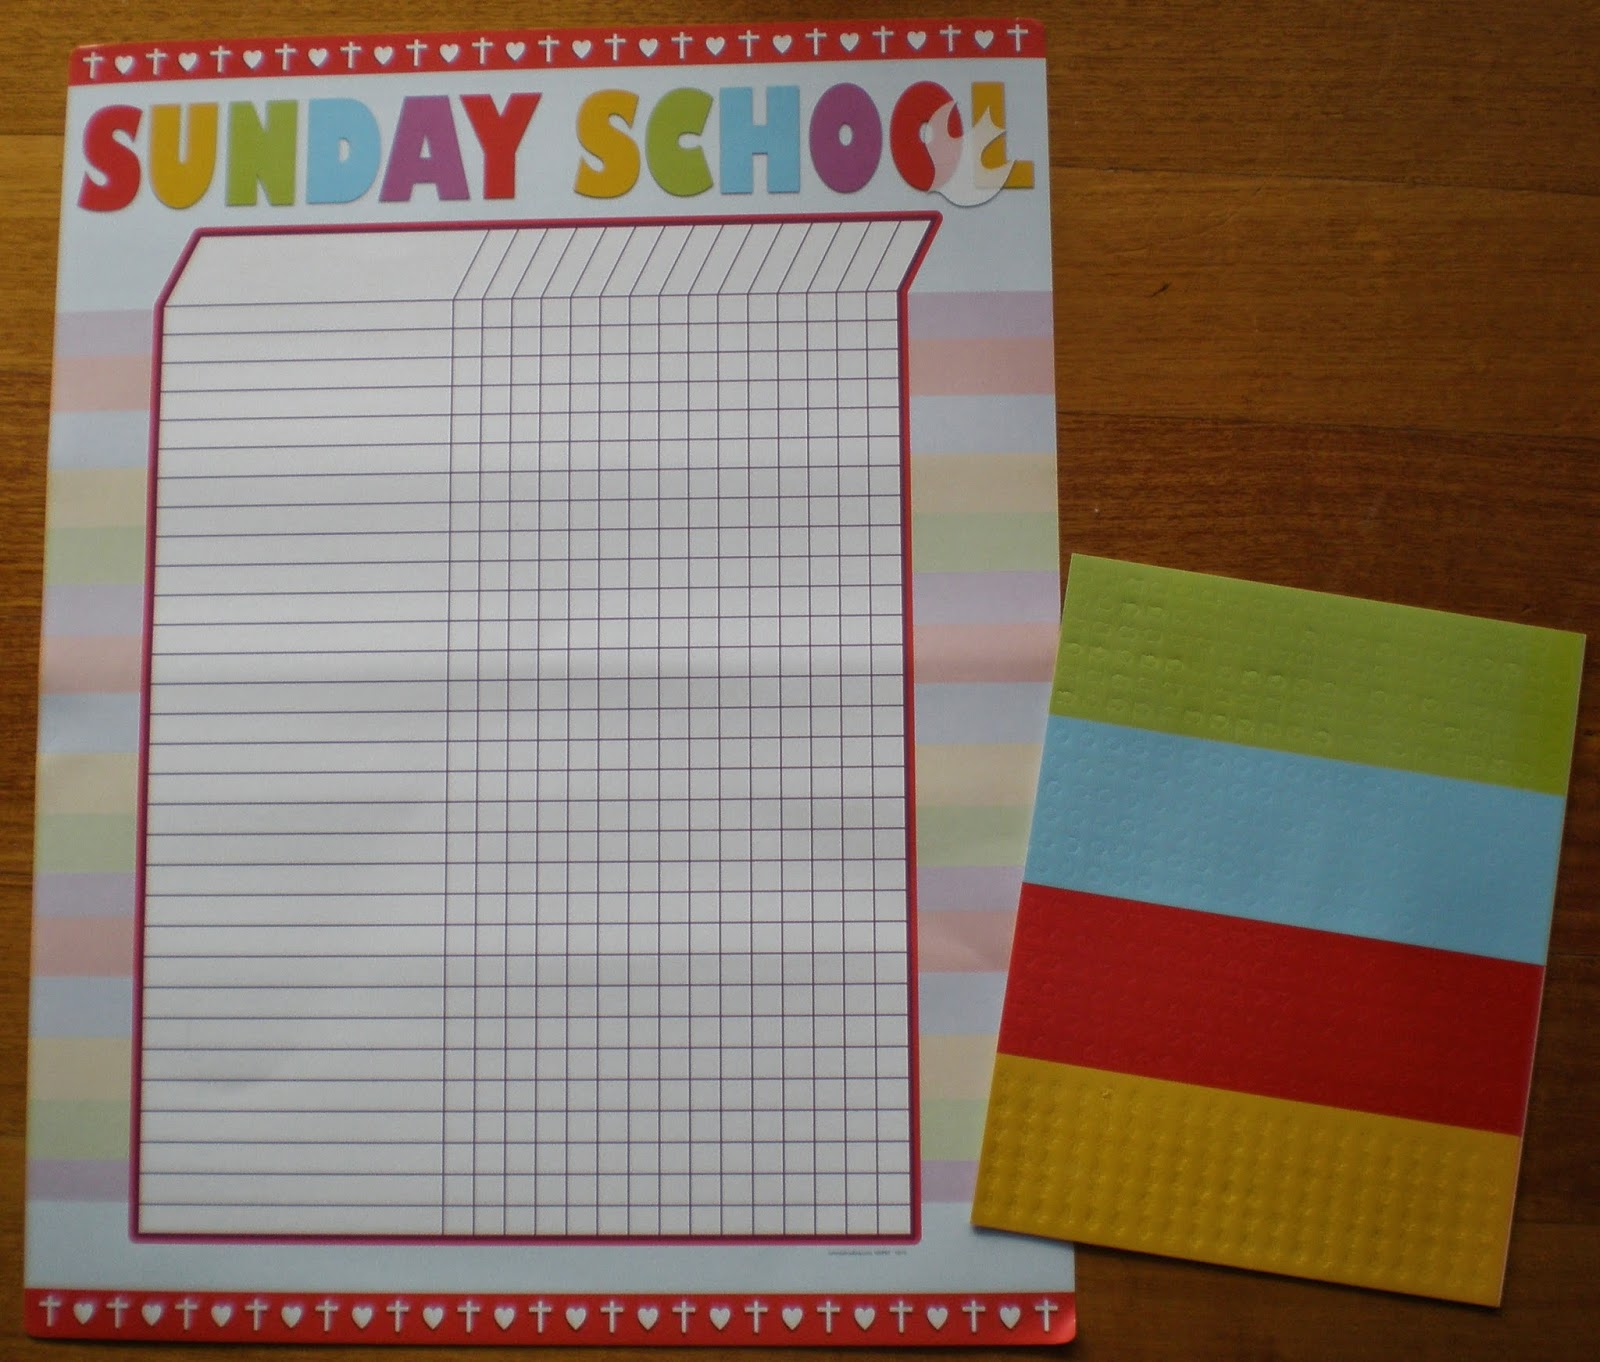 Petersham Bible Book & Tract Depot: Sunday School Attendance Sticker ...